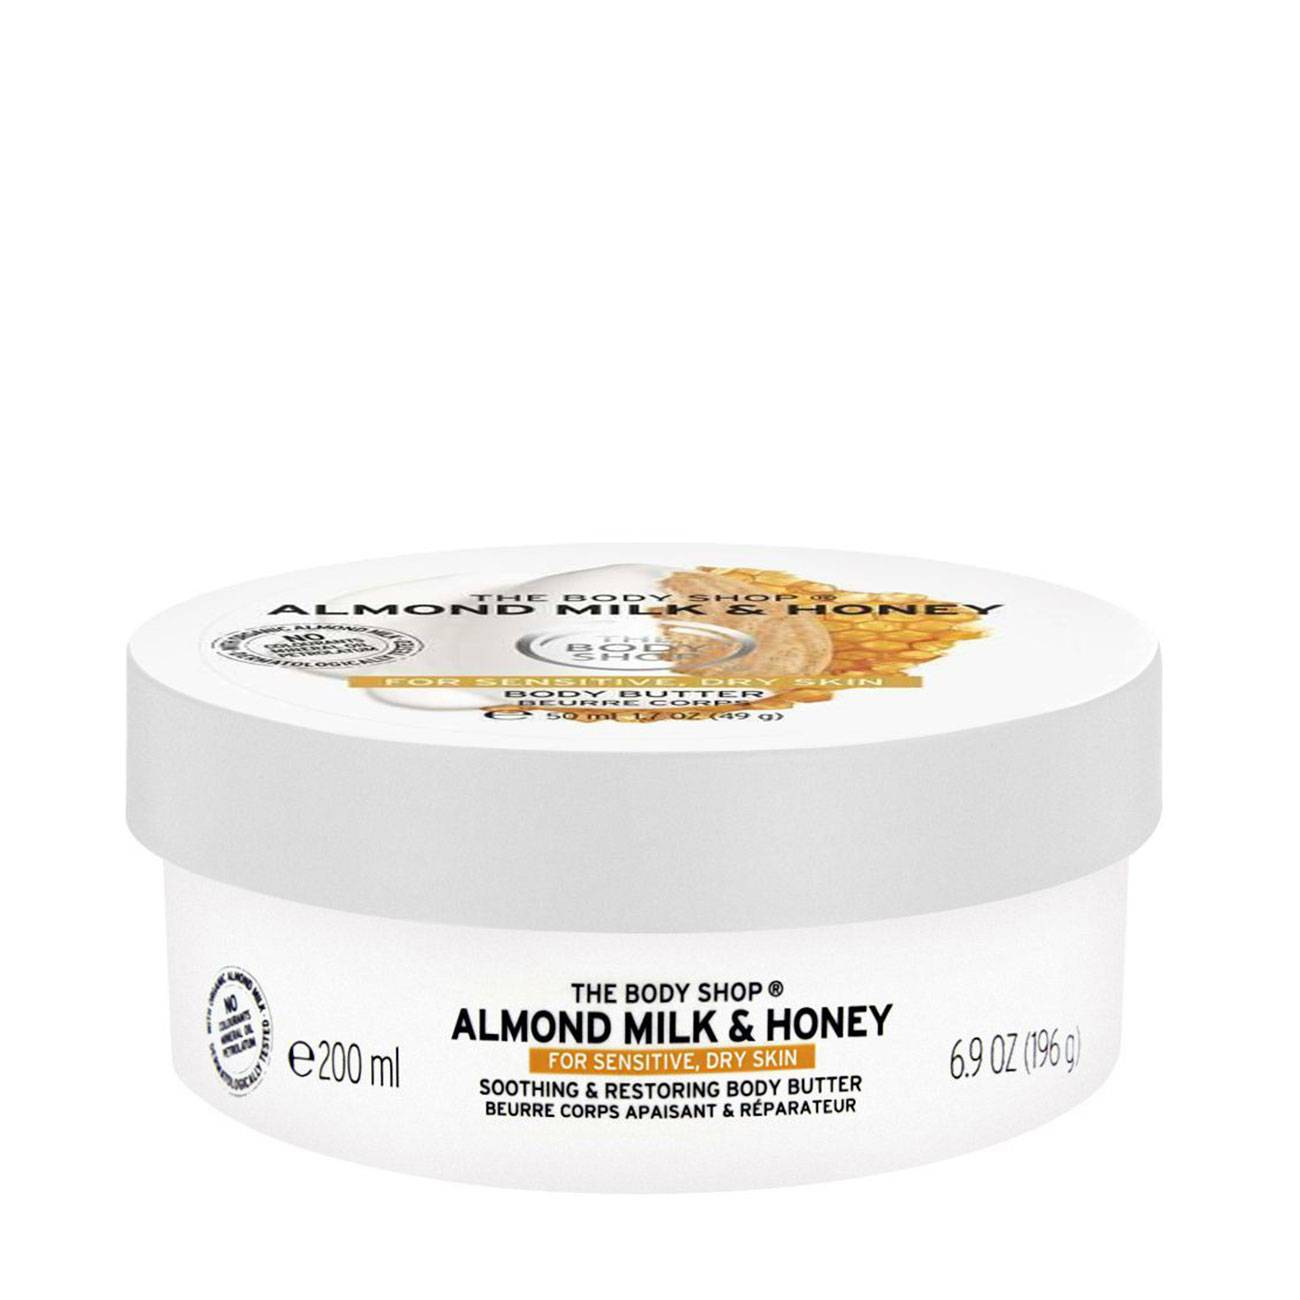 ALMOND MILK & HONEY BODY BUTTER 200ml poza